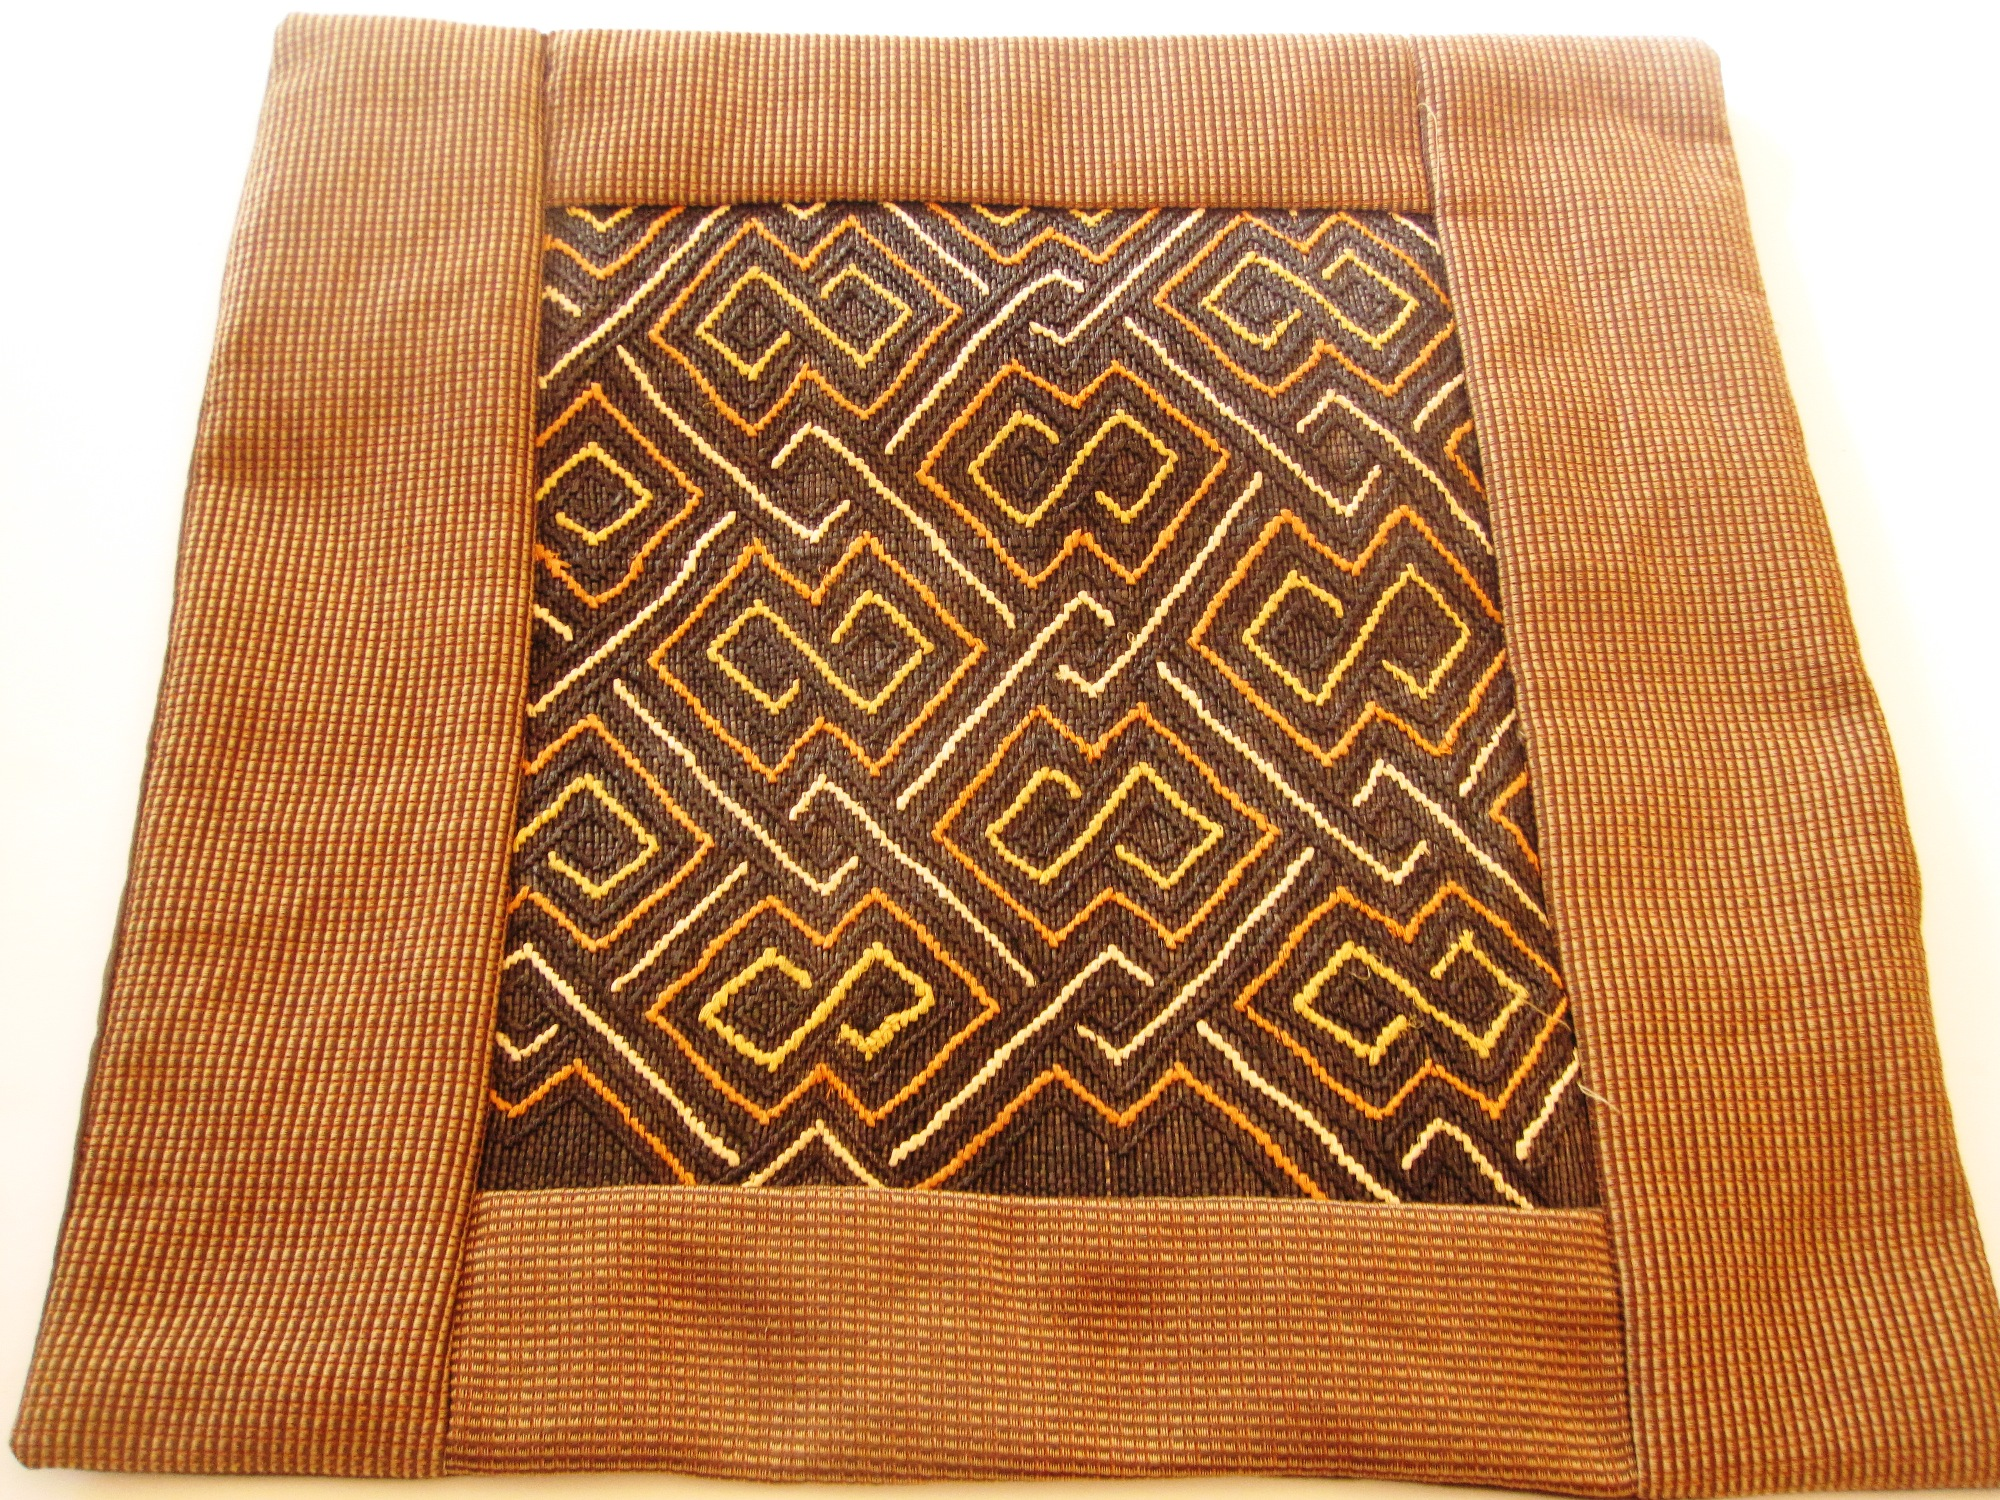 Regional African Cushion Cover #4